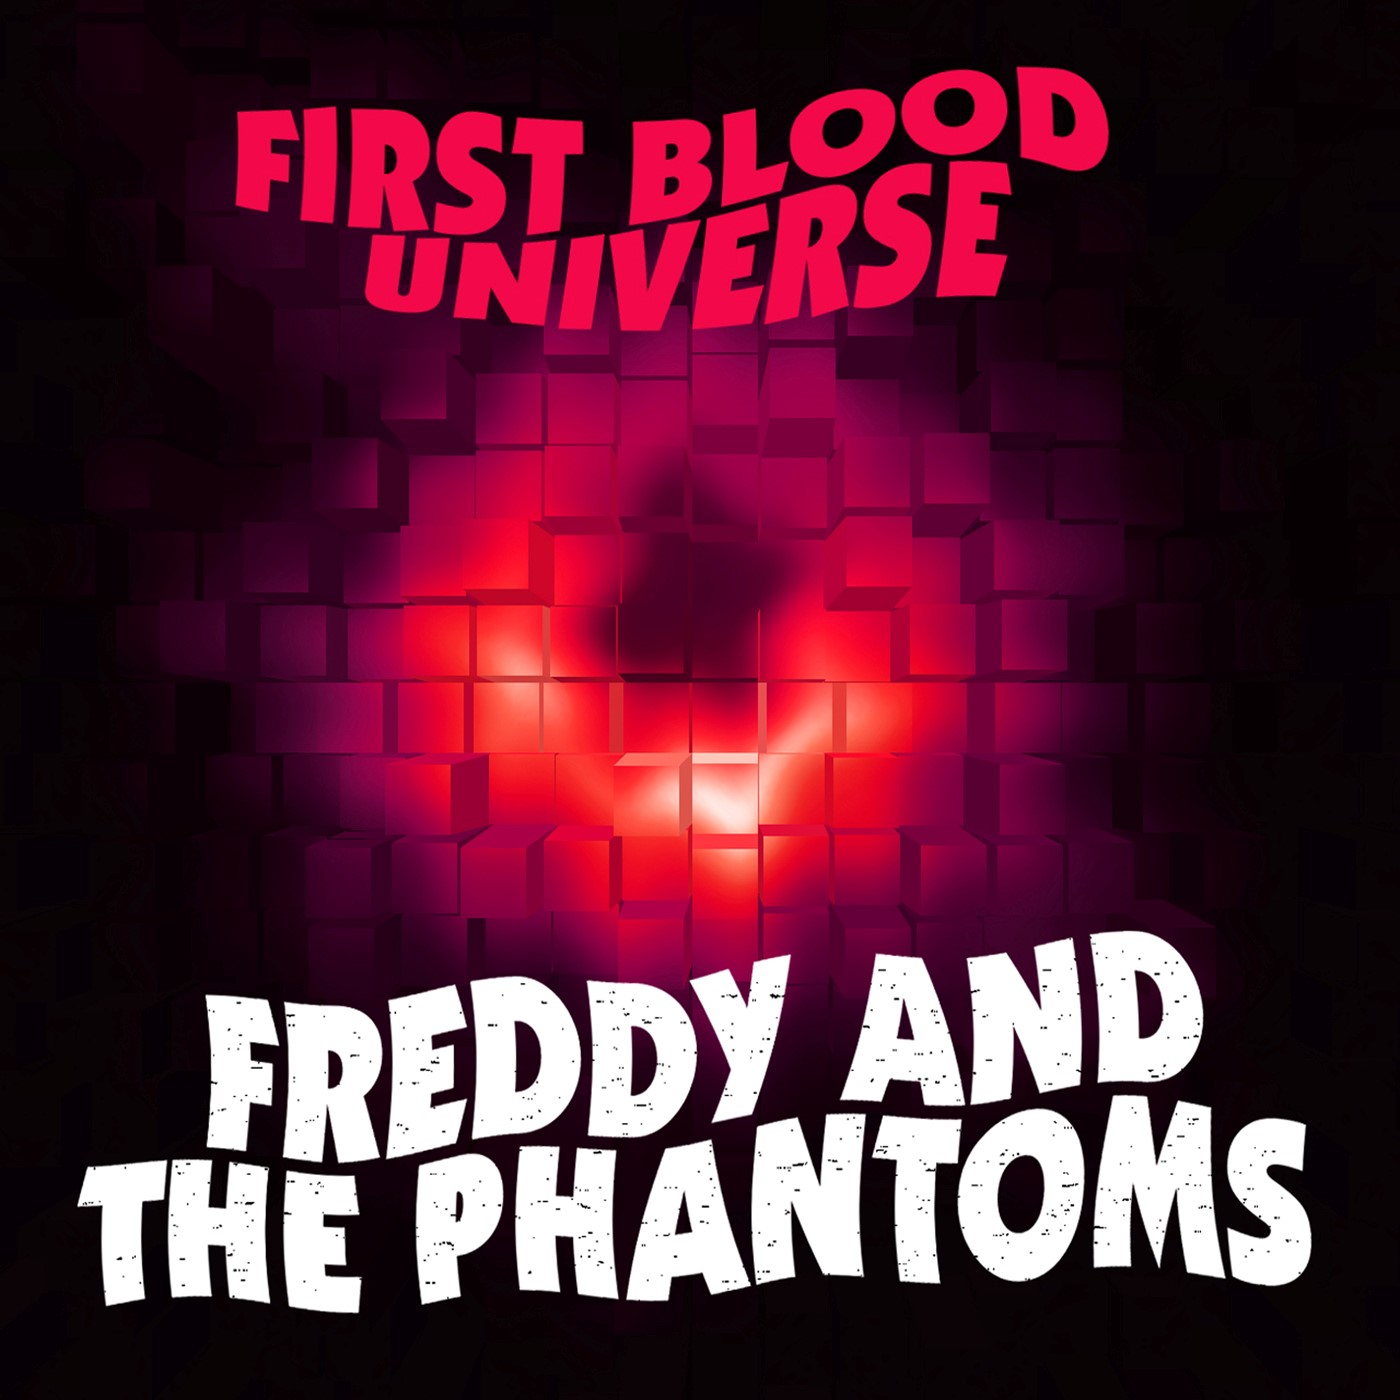 Freddy And The Phantoms – First Blood Universe (single)